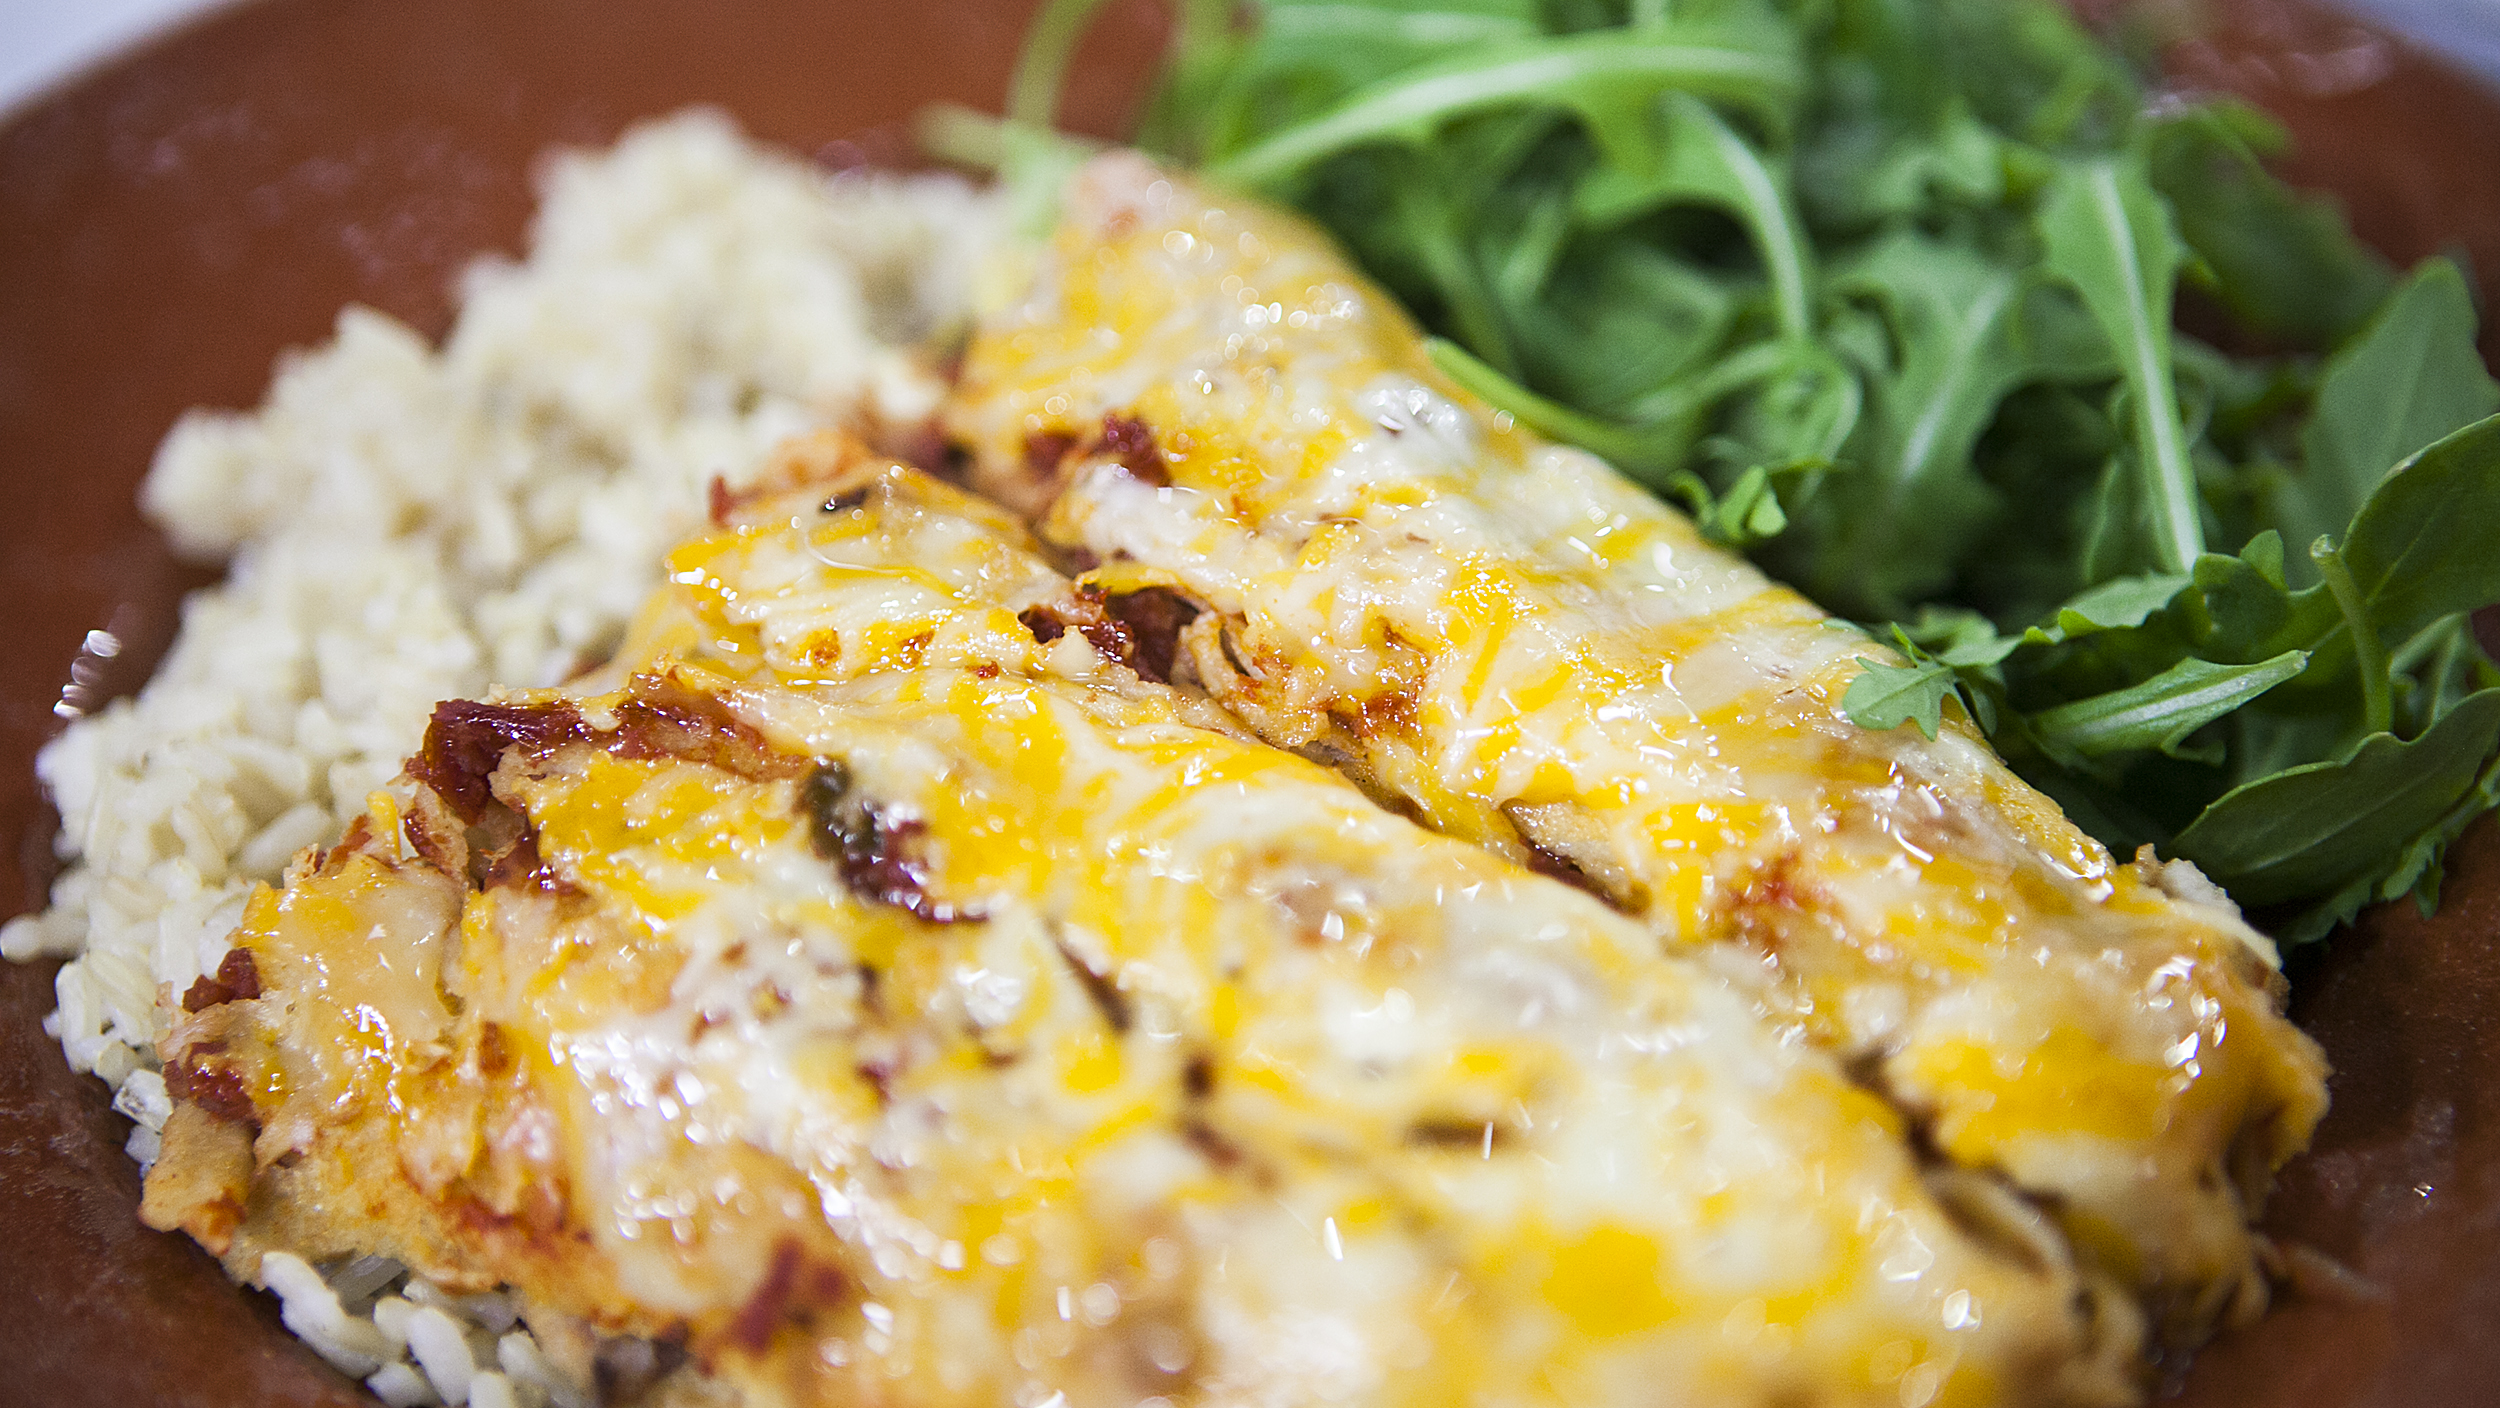 Feed your entire family on $5: Enchiladas, roasted chicken, more